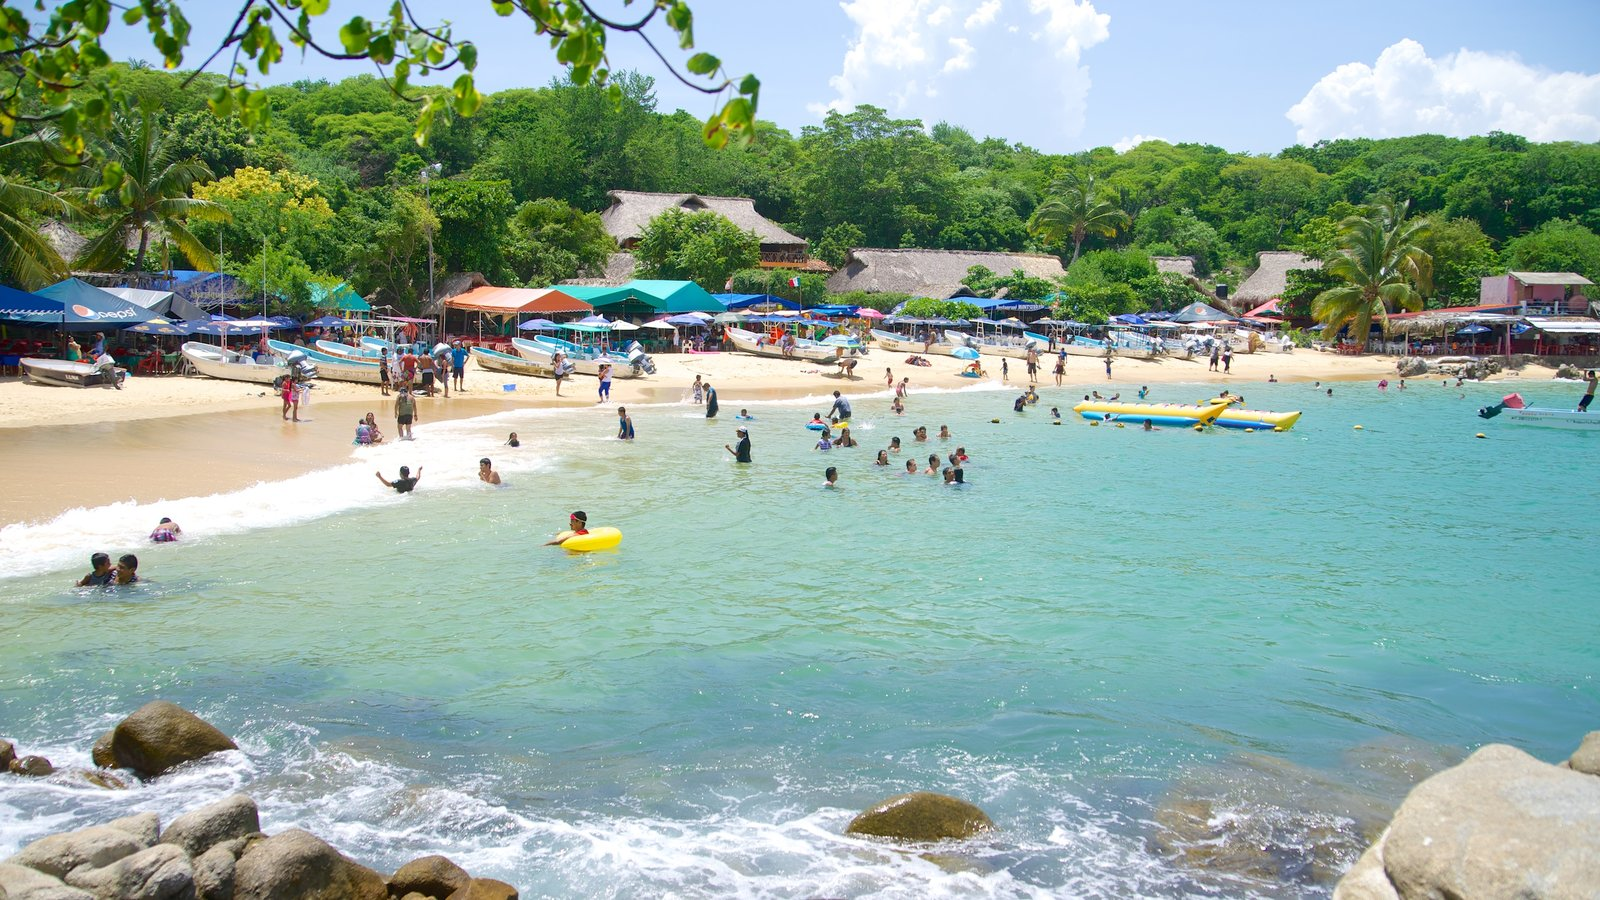 Puerto Angelito Beach showing a sandy beach and swimming